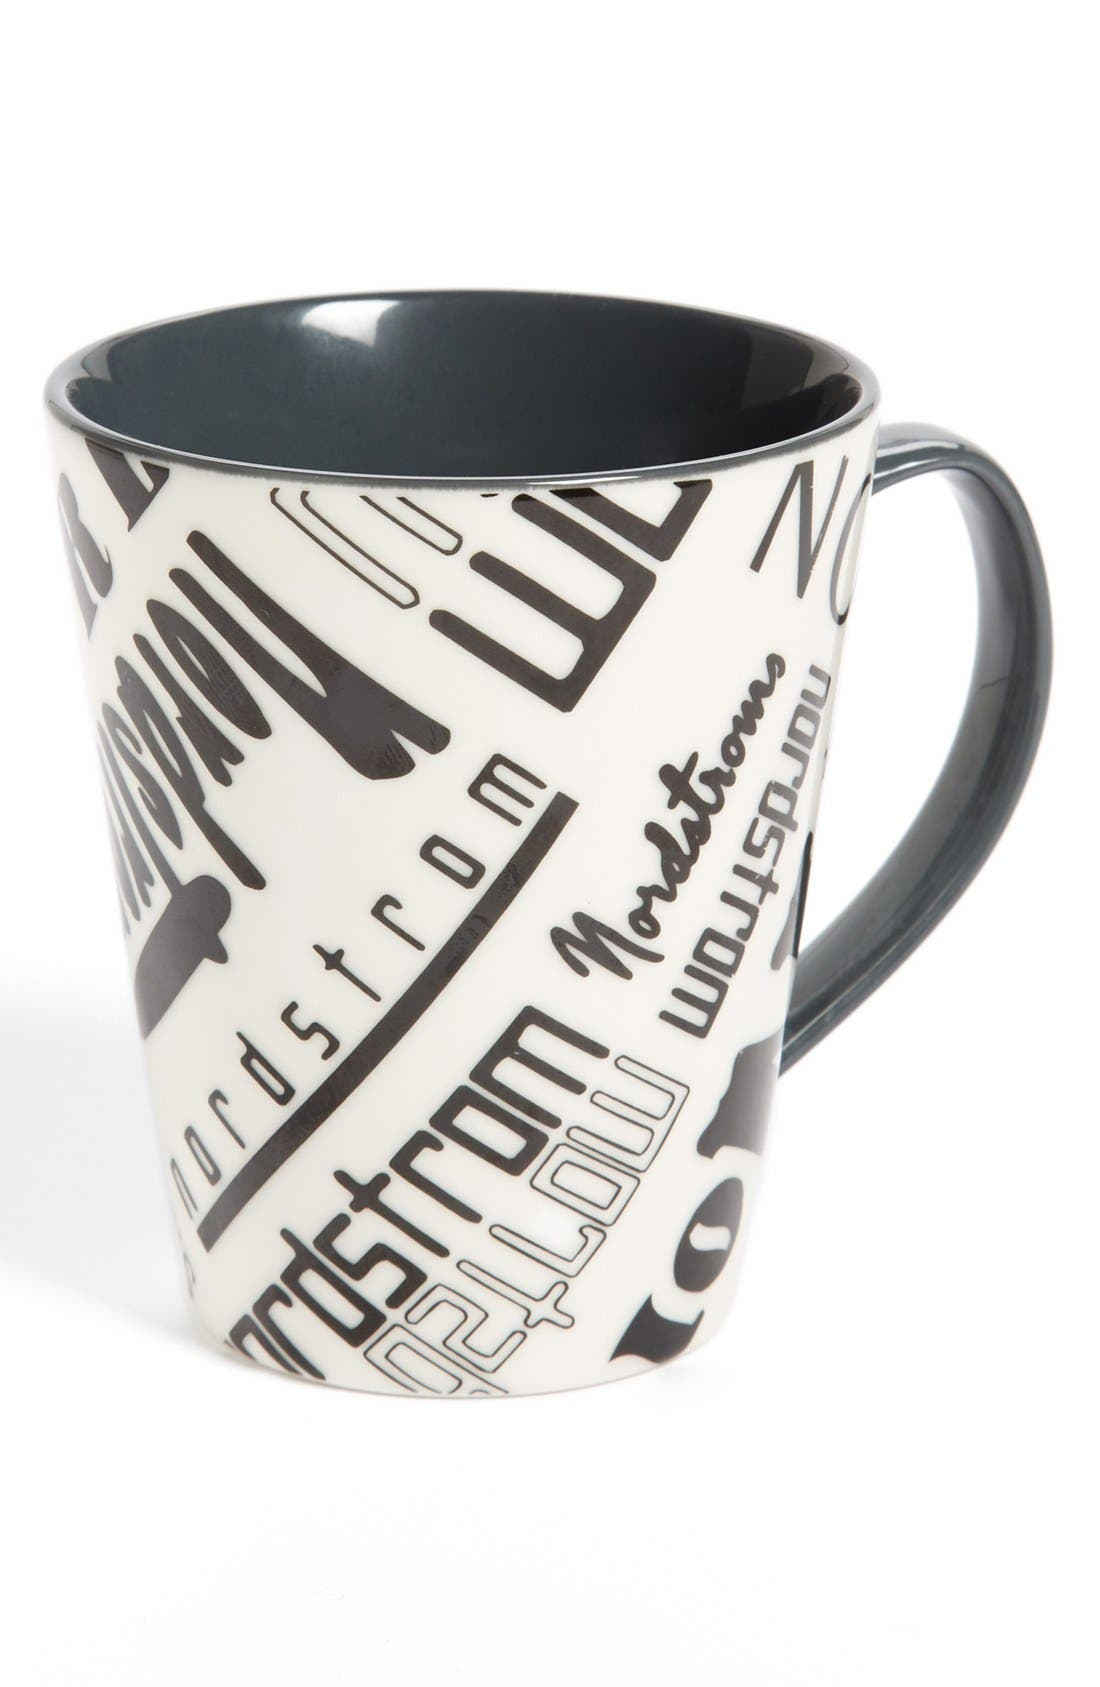 NORDSTROM AT HOME,                             Nordstrom Heritage Collection 'Historical Nordstrom Logo' Print Coffee Mug,                             Main thumbnail 1, color,                             020